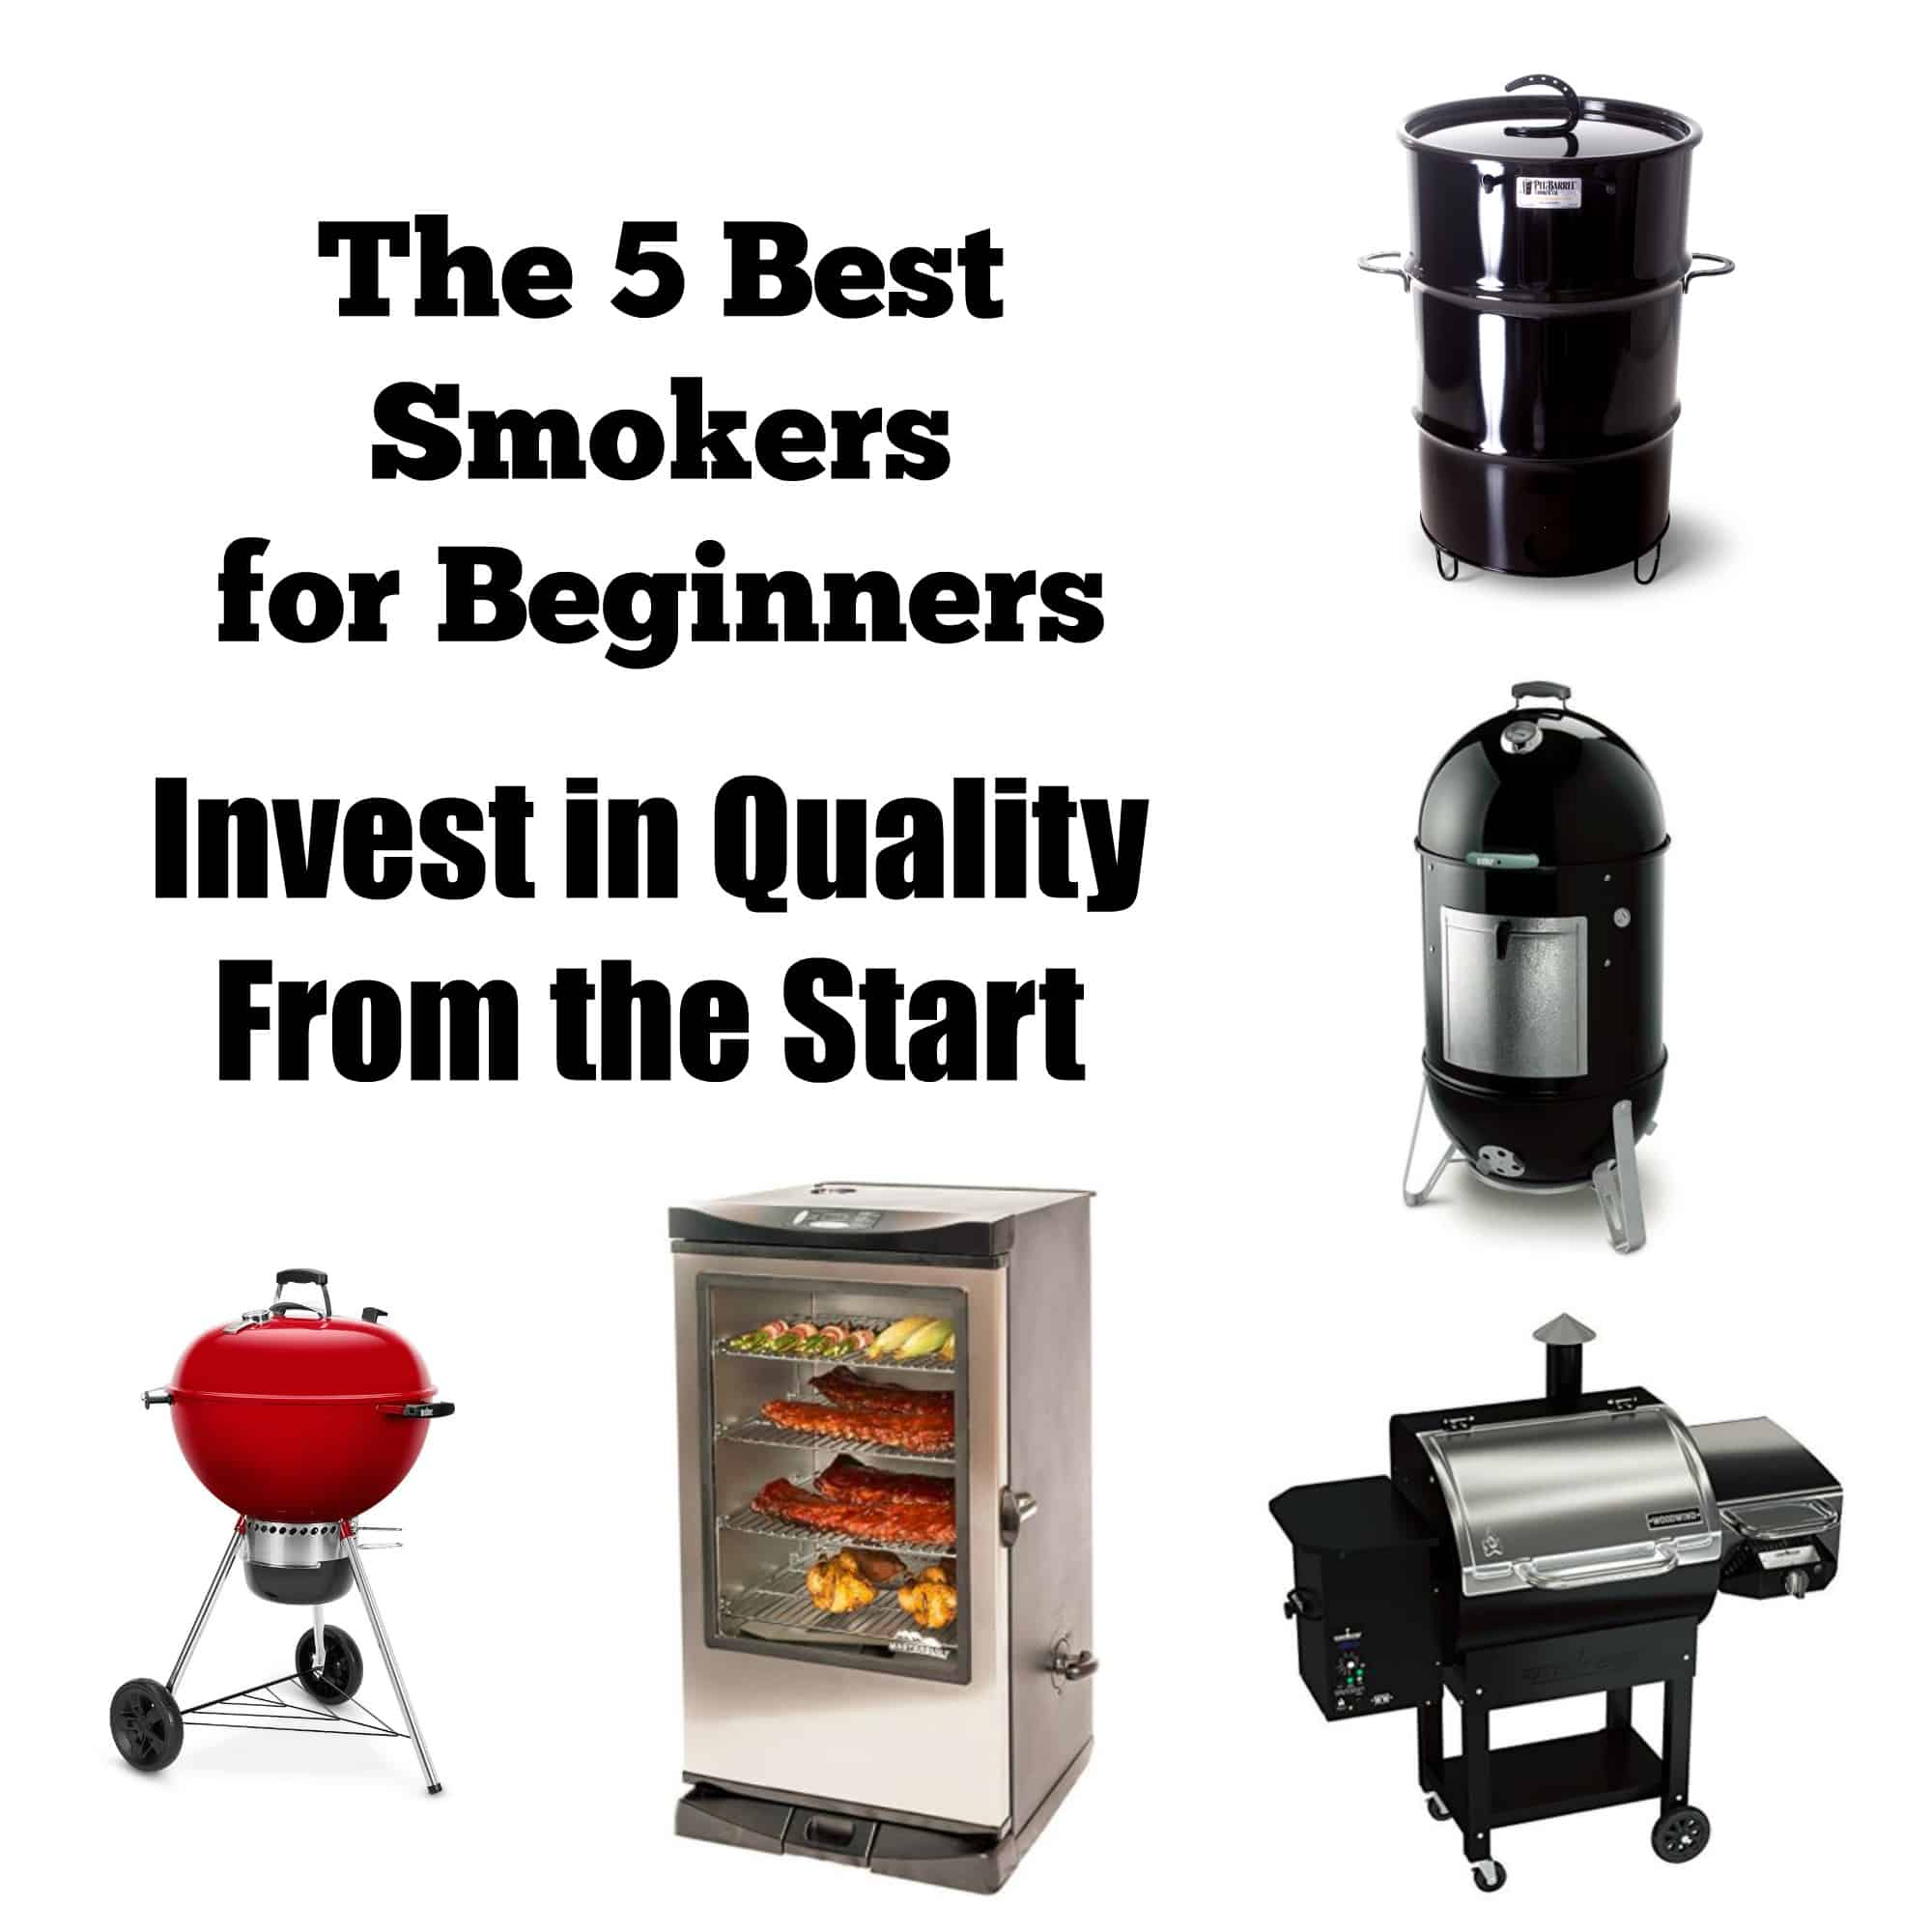 Best Smoker For Beginners Five Great Options And Two Bad